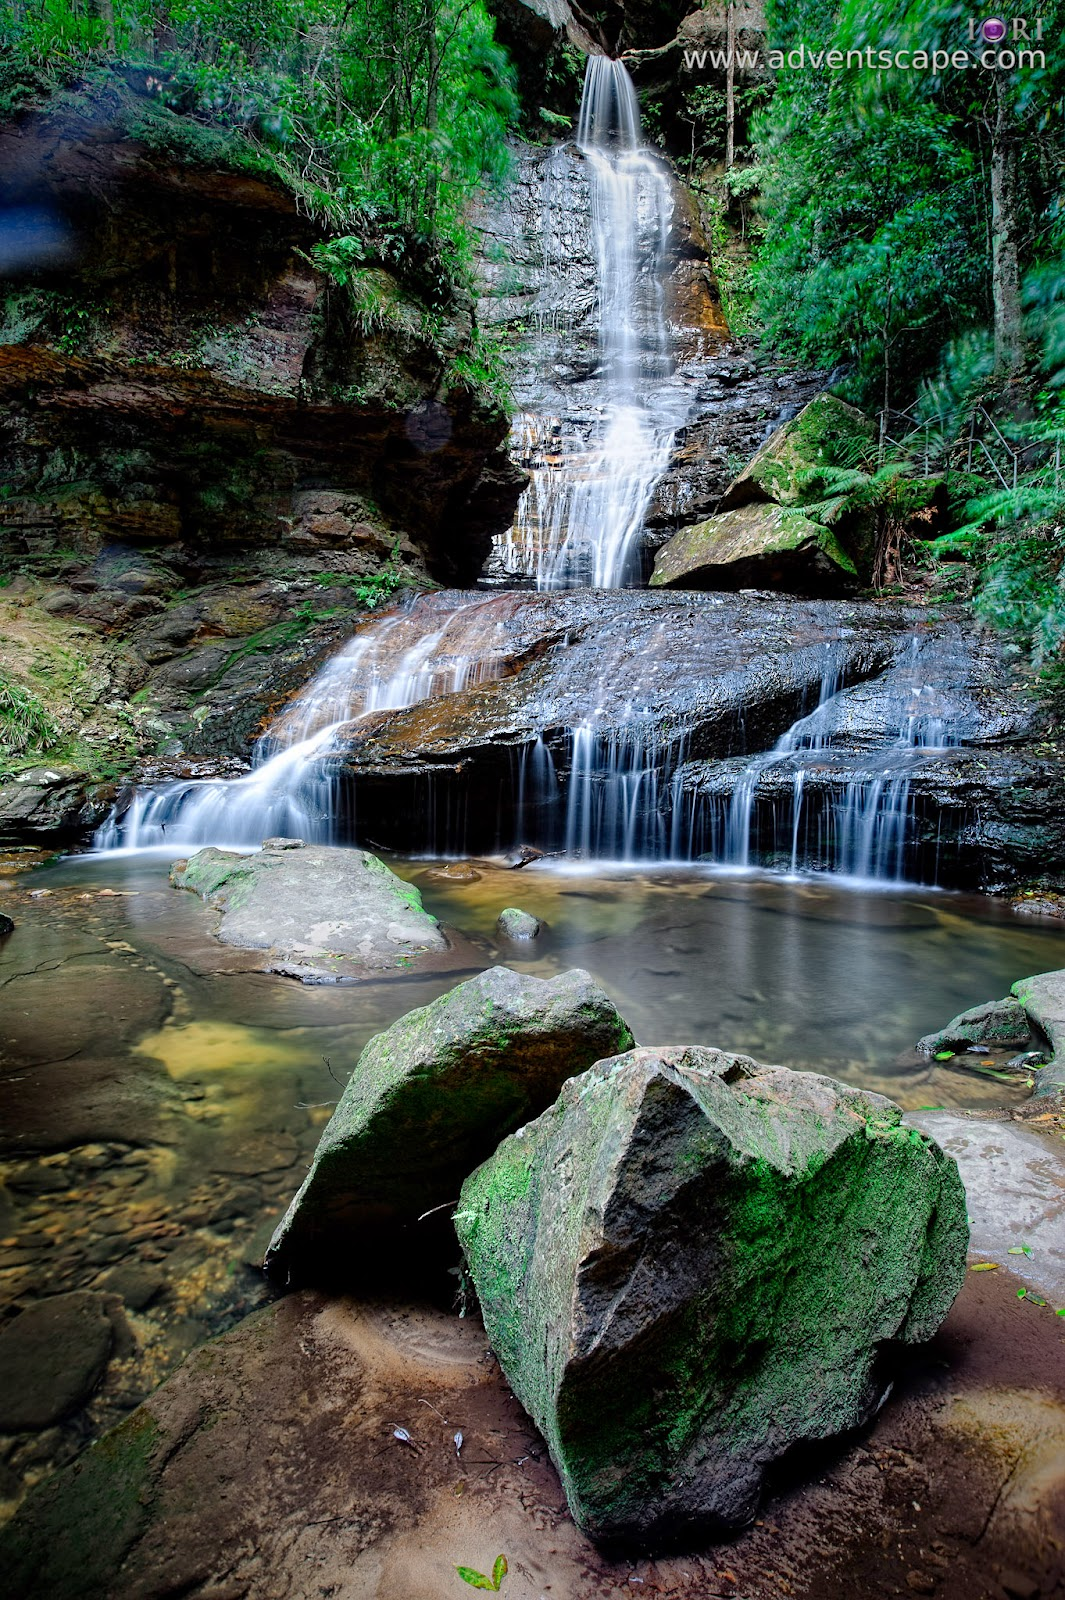 Philip Avellana, iori, adventscape, Wentworth Falls, falls, waterfalls, tourism, hike, track, bush walk, NSW, New South Wales, Australia, Katoomba, Wentworth, Australia, Blue Mountains, Empress Falls